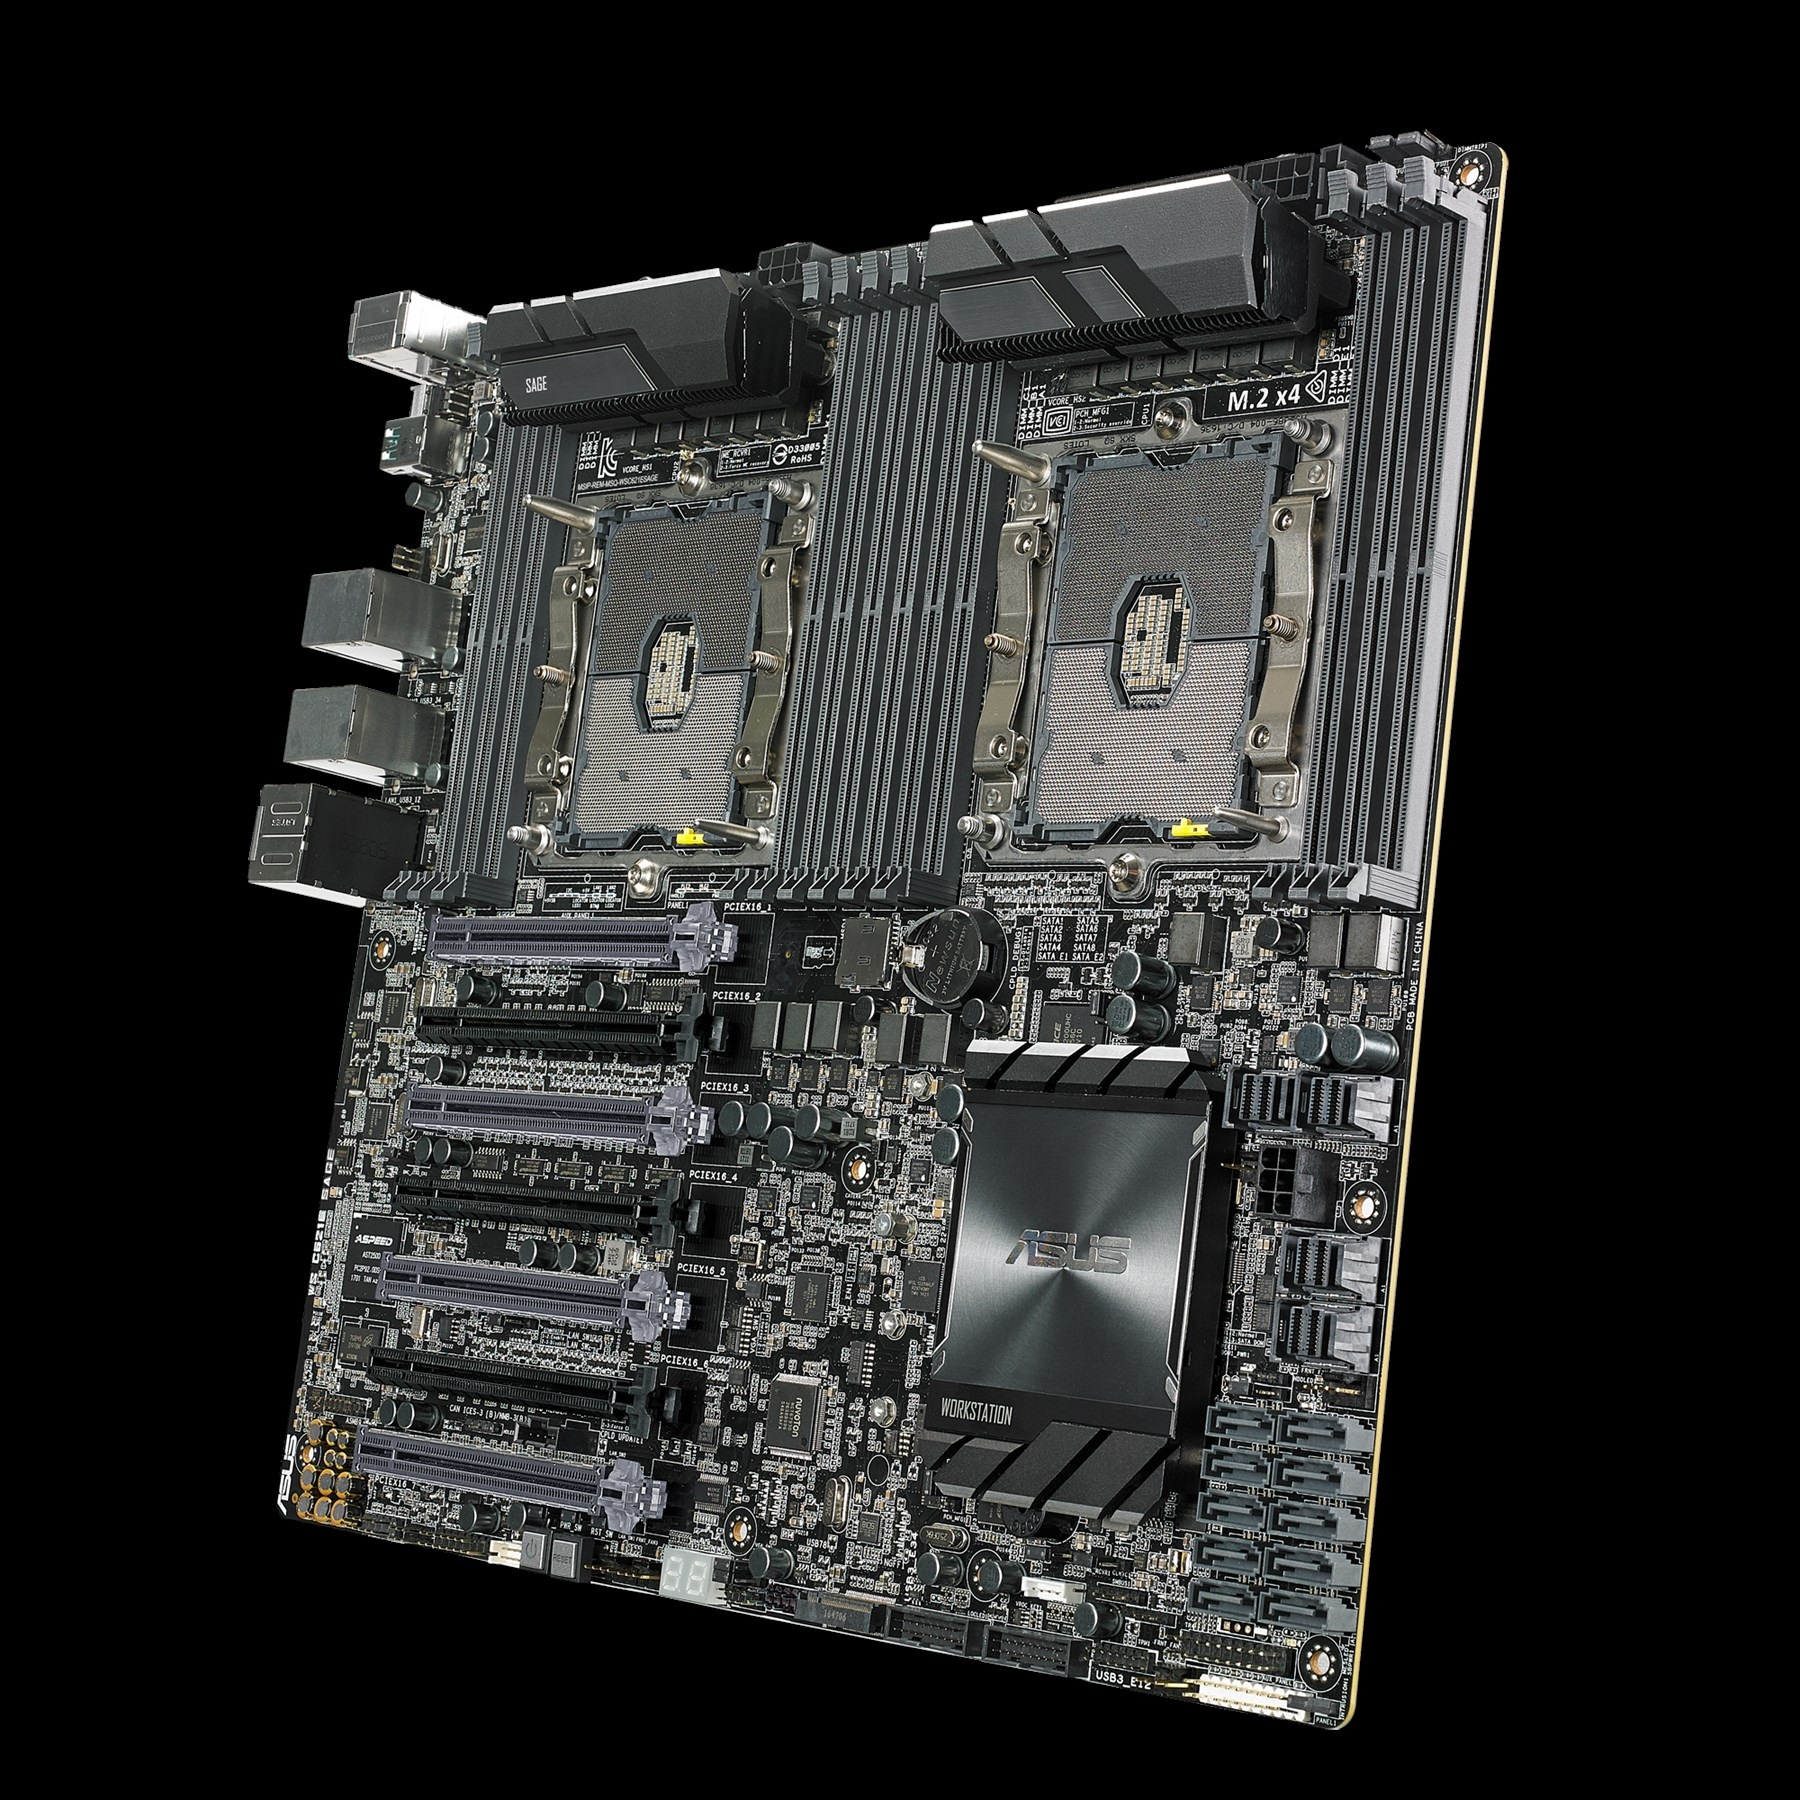 Dual Xeon Scalable Overclocking: ASUS WS C621E 'Sage' Workstation